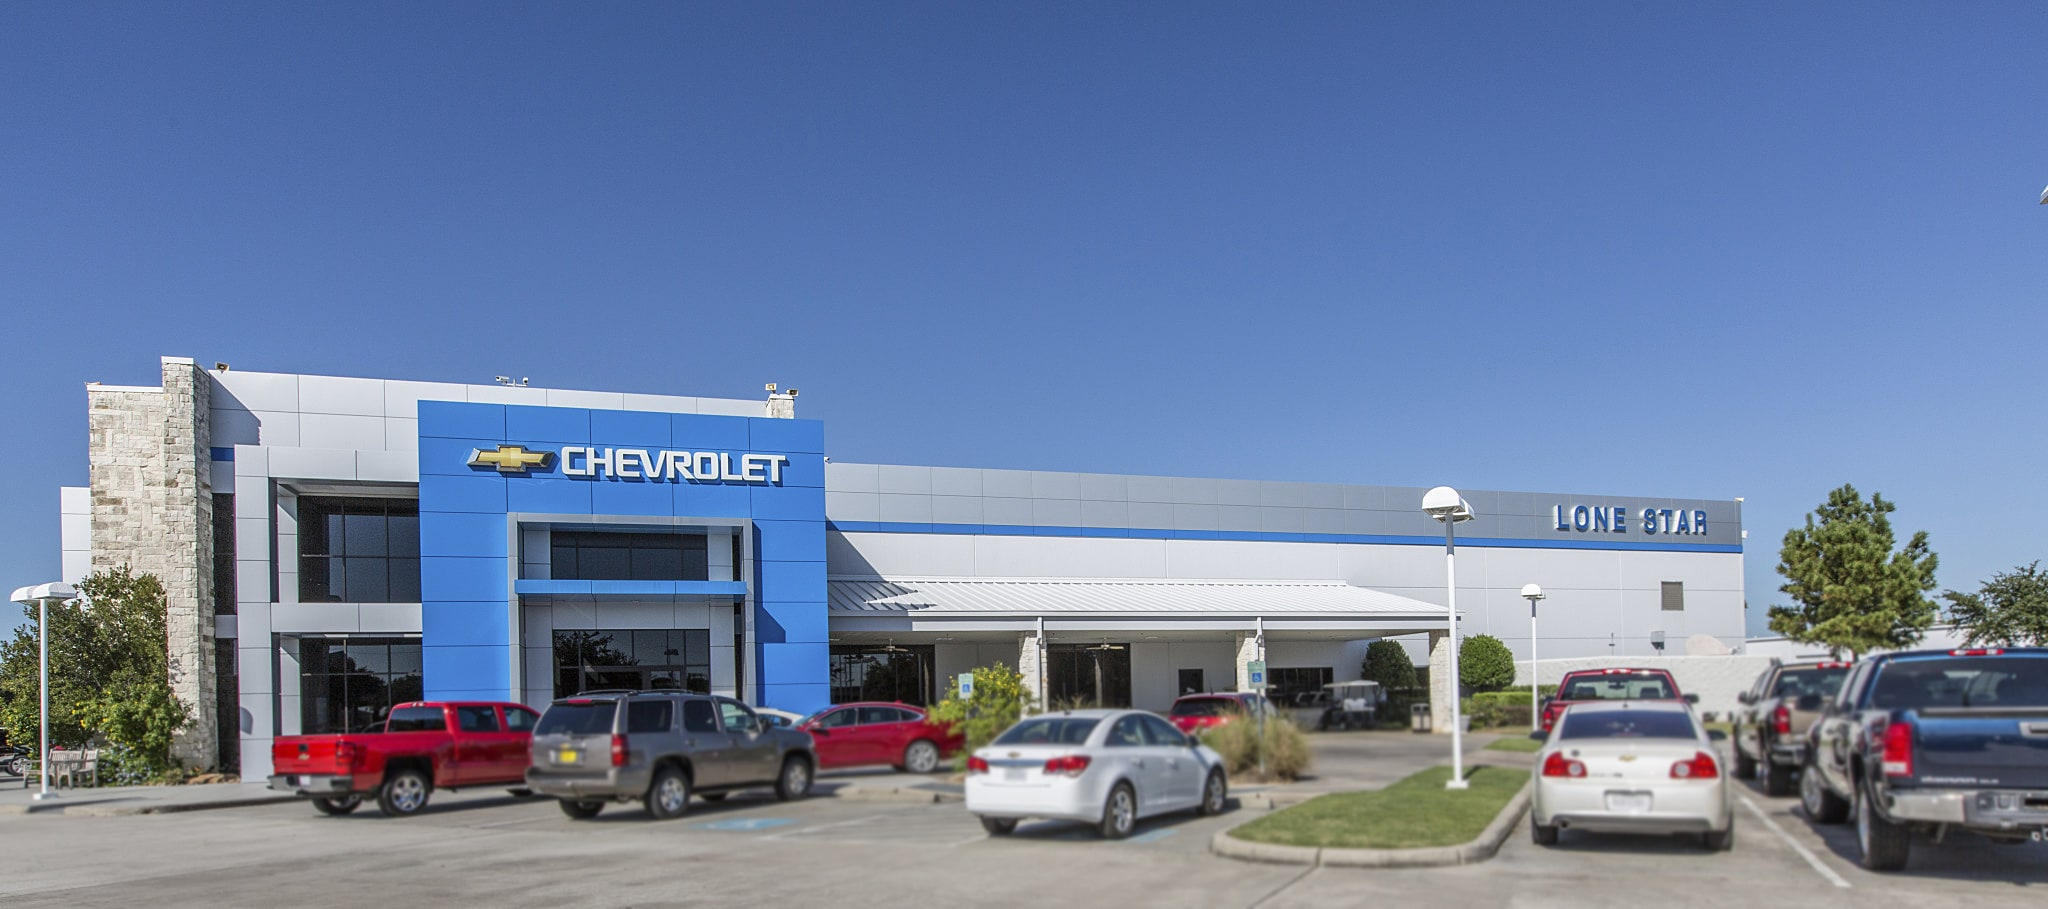 lone star chevrolet new chevrolet dealership in houston tx 77065. Cars Review. Best American Auto & Cars Review